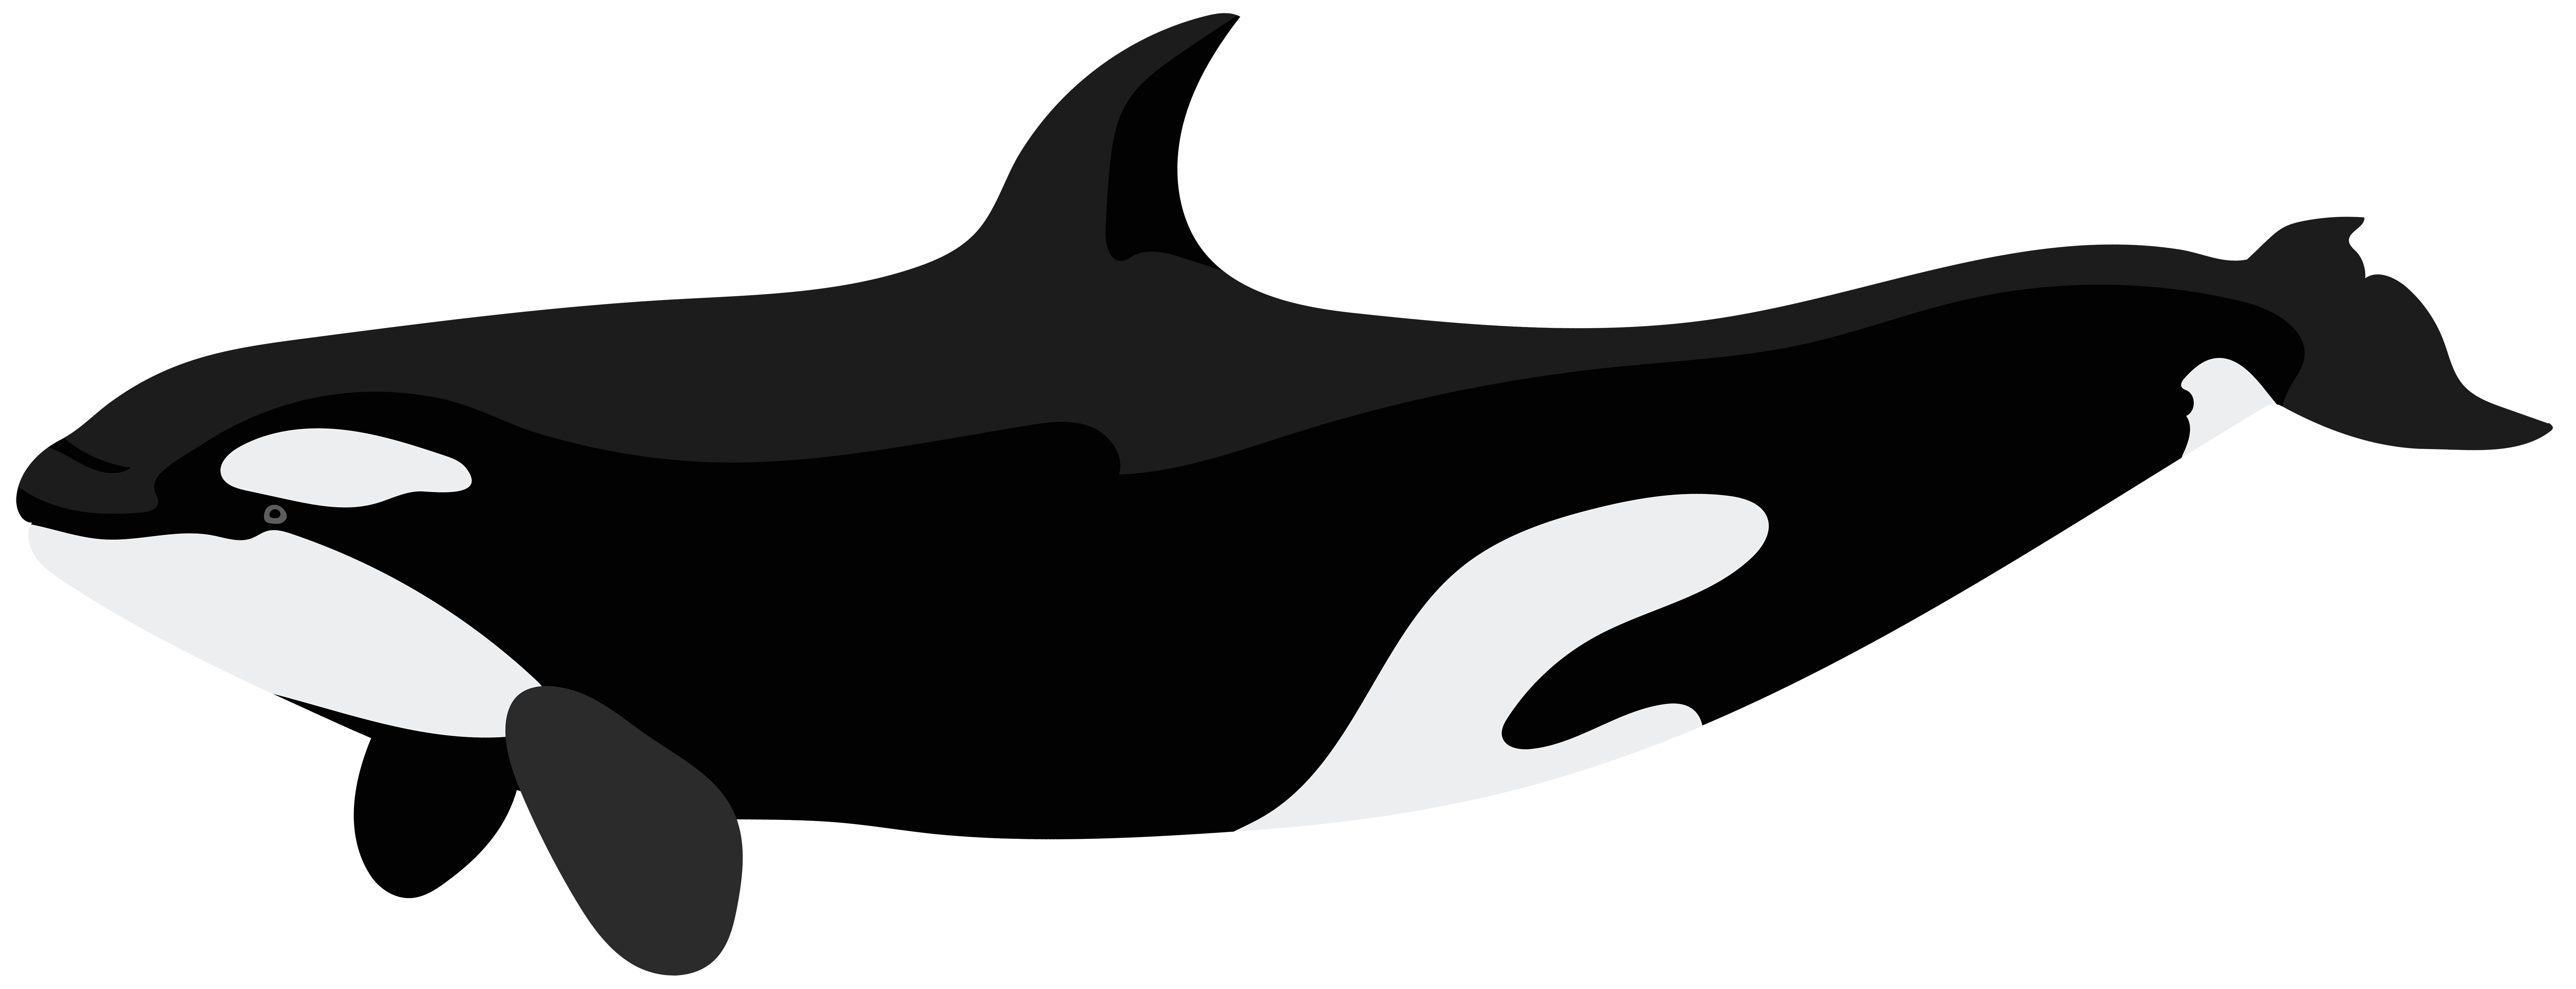 png black and white Orca clipart. Png clip art image